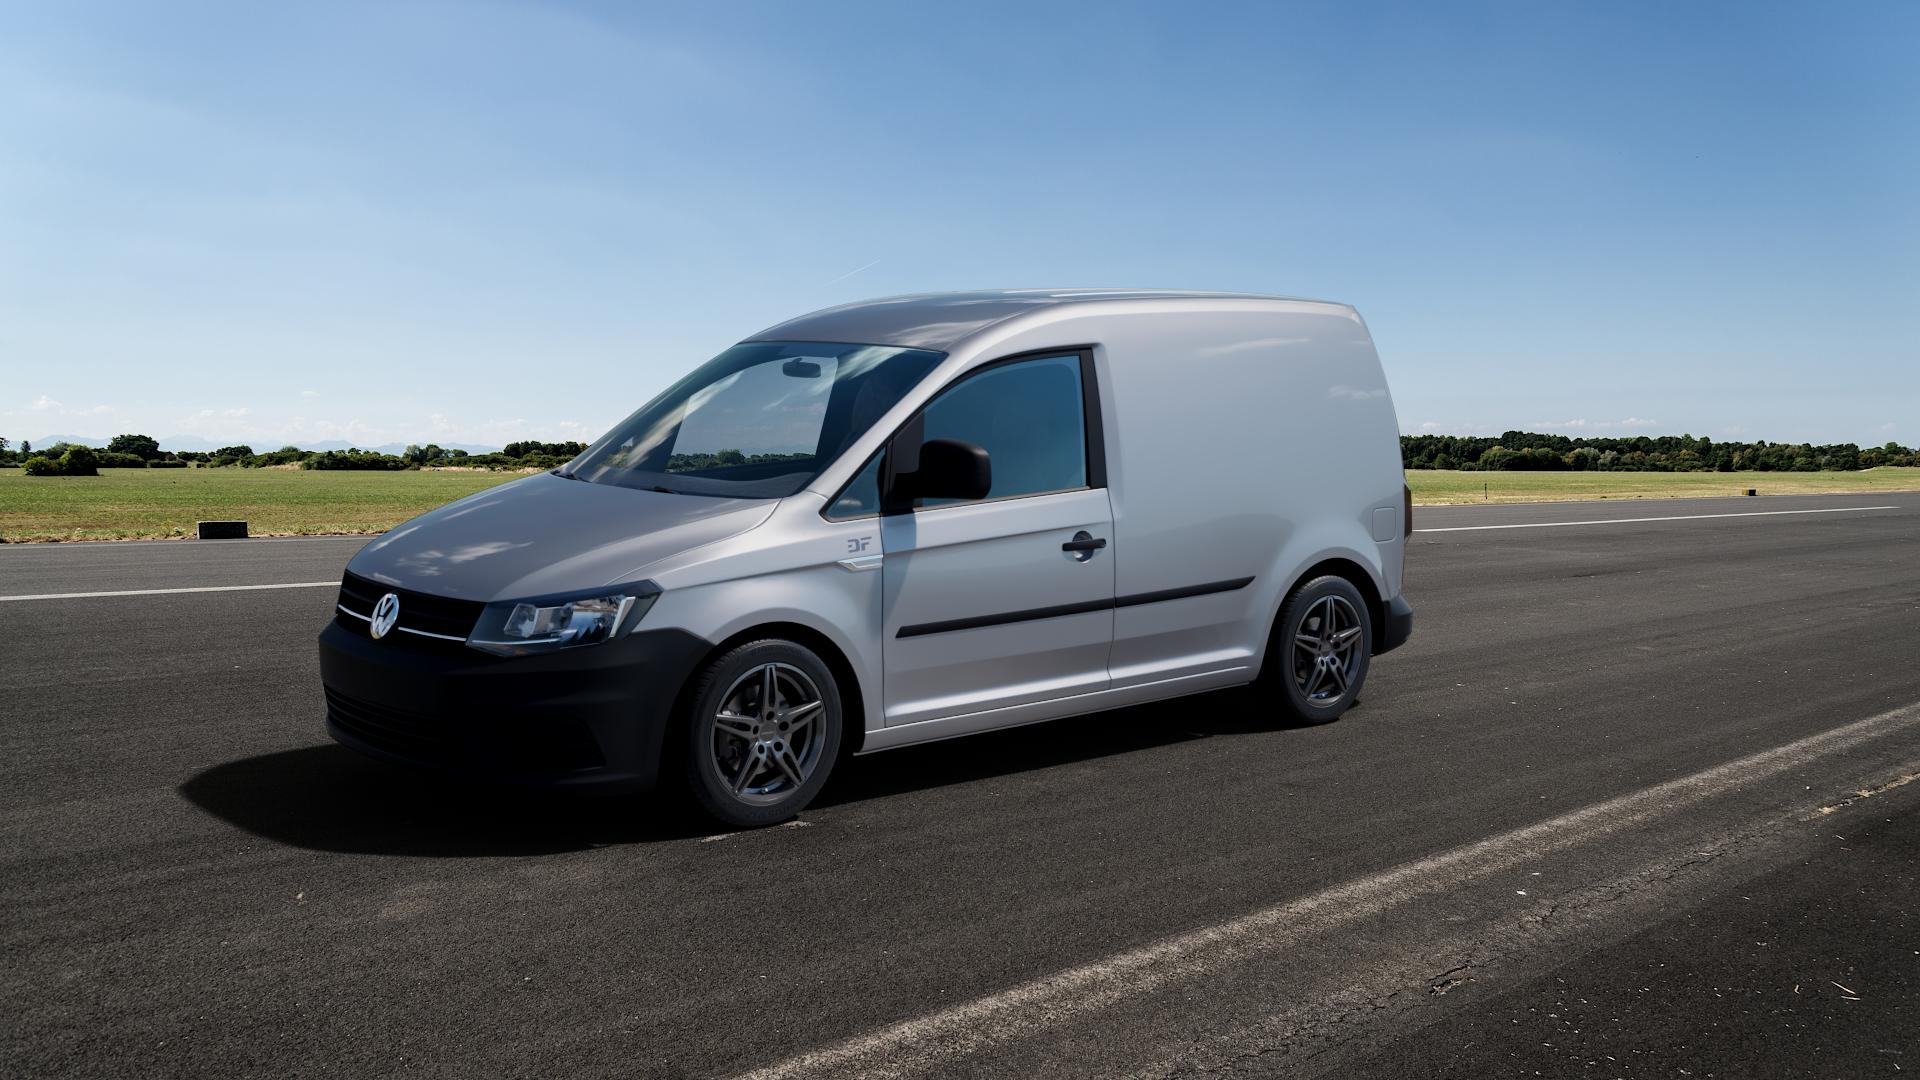 CARMANI 15 Oskar hyper gun Felge mit Reifen silber in 16Zoll Winterfelge Alufelge auf silbernem Volkswagen (VW) Caddy 4 ⬇️ mit 15mm Tieferlegung ⬇️ Big_Vehicle_Airstrip_1 Frontansicht_1